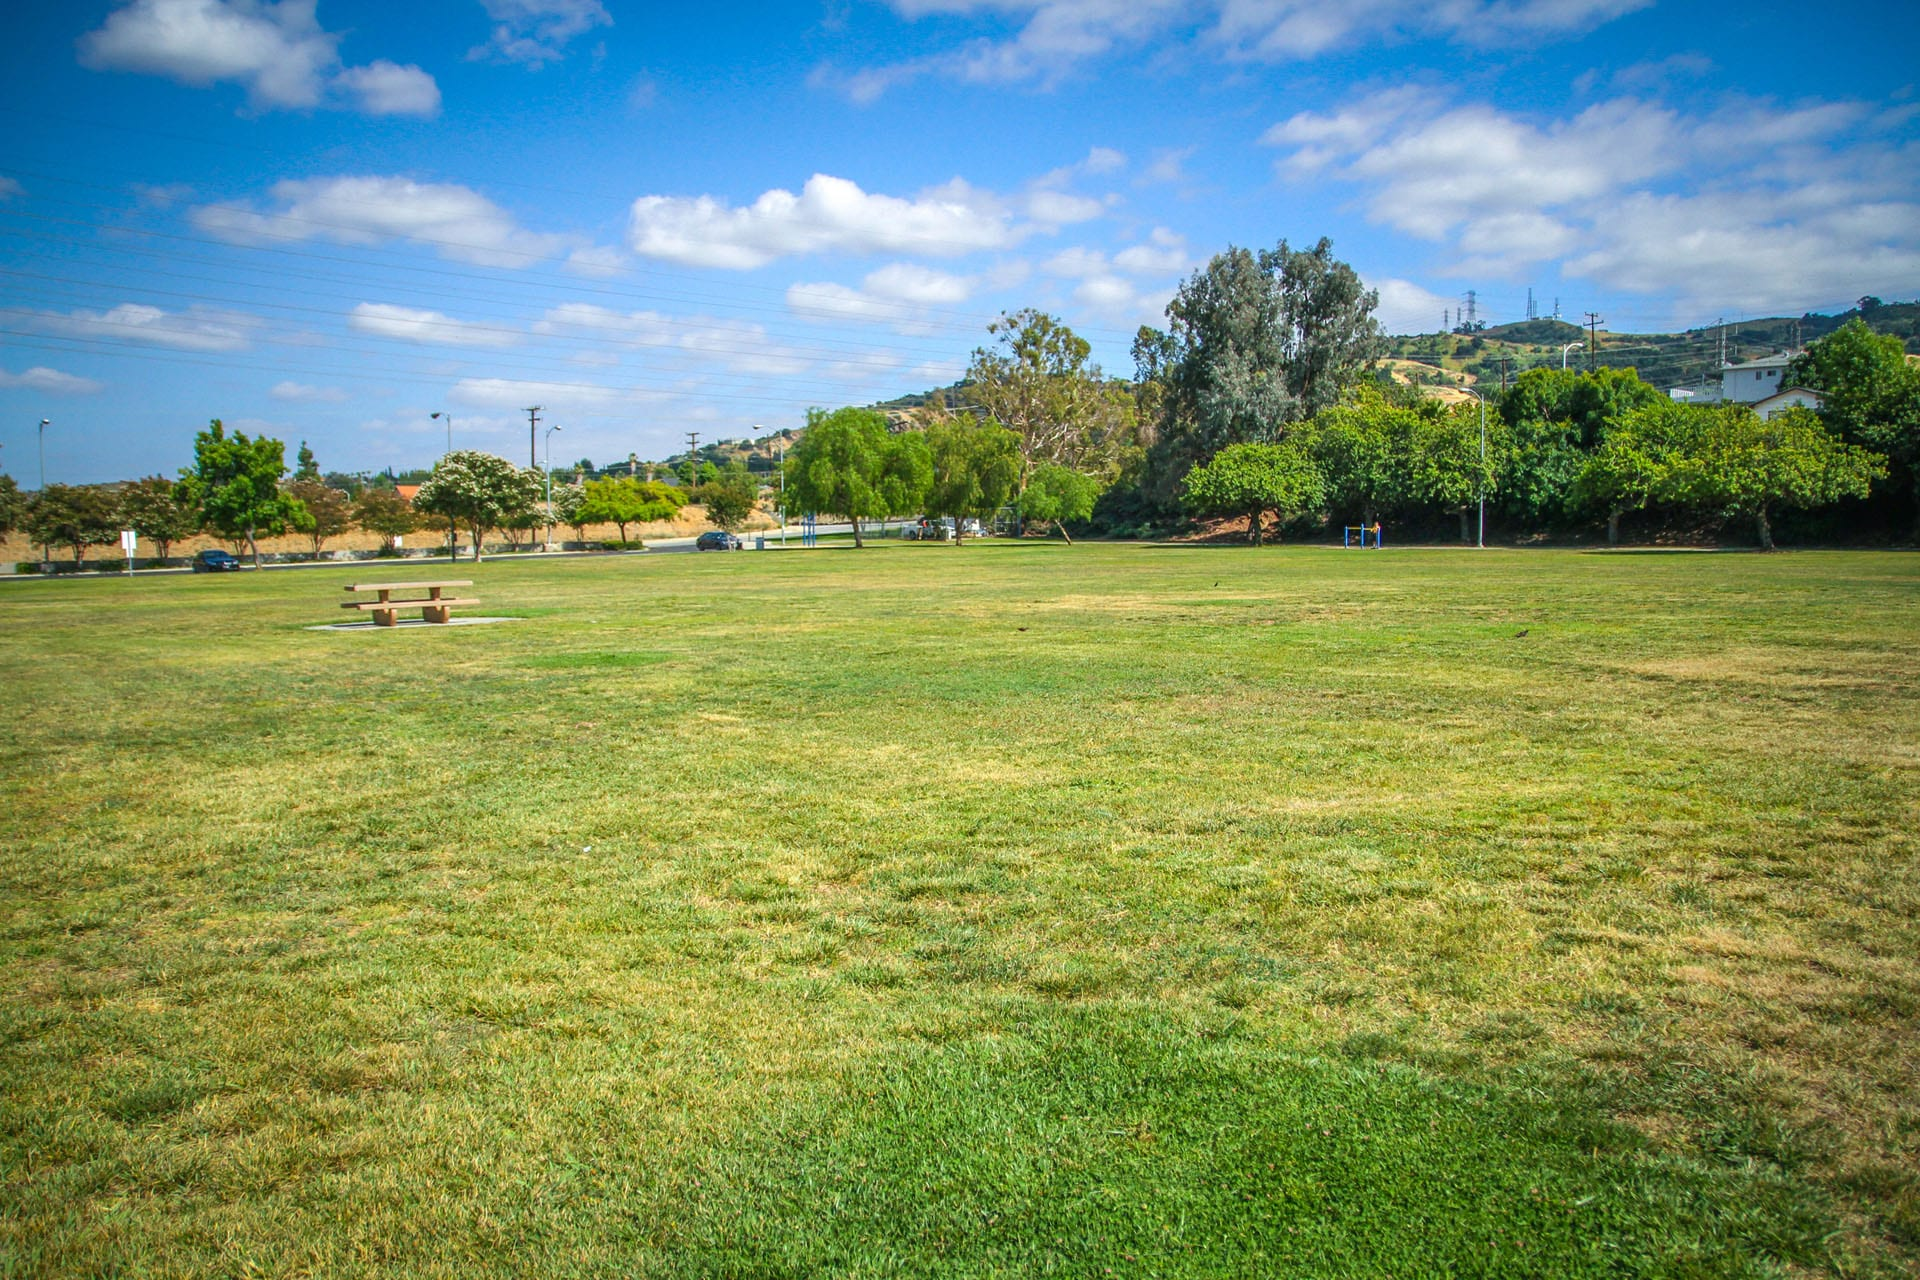 Wide open grass field with picnic table